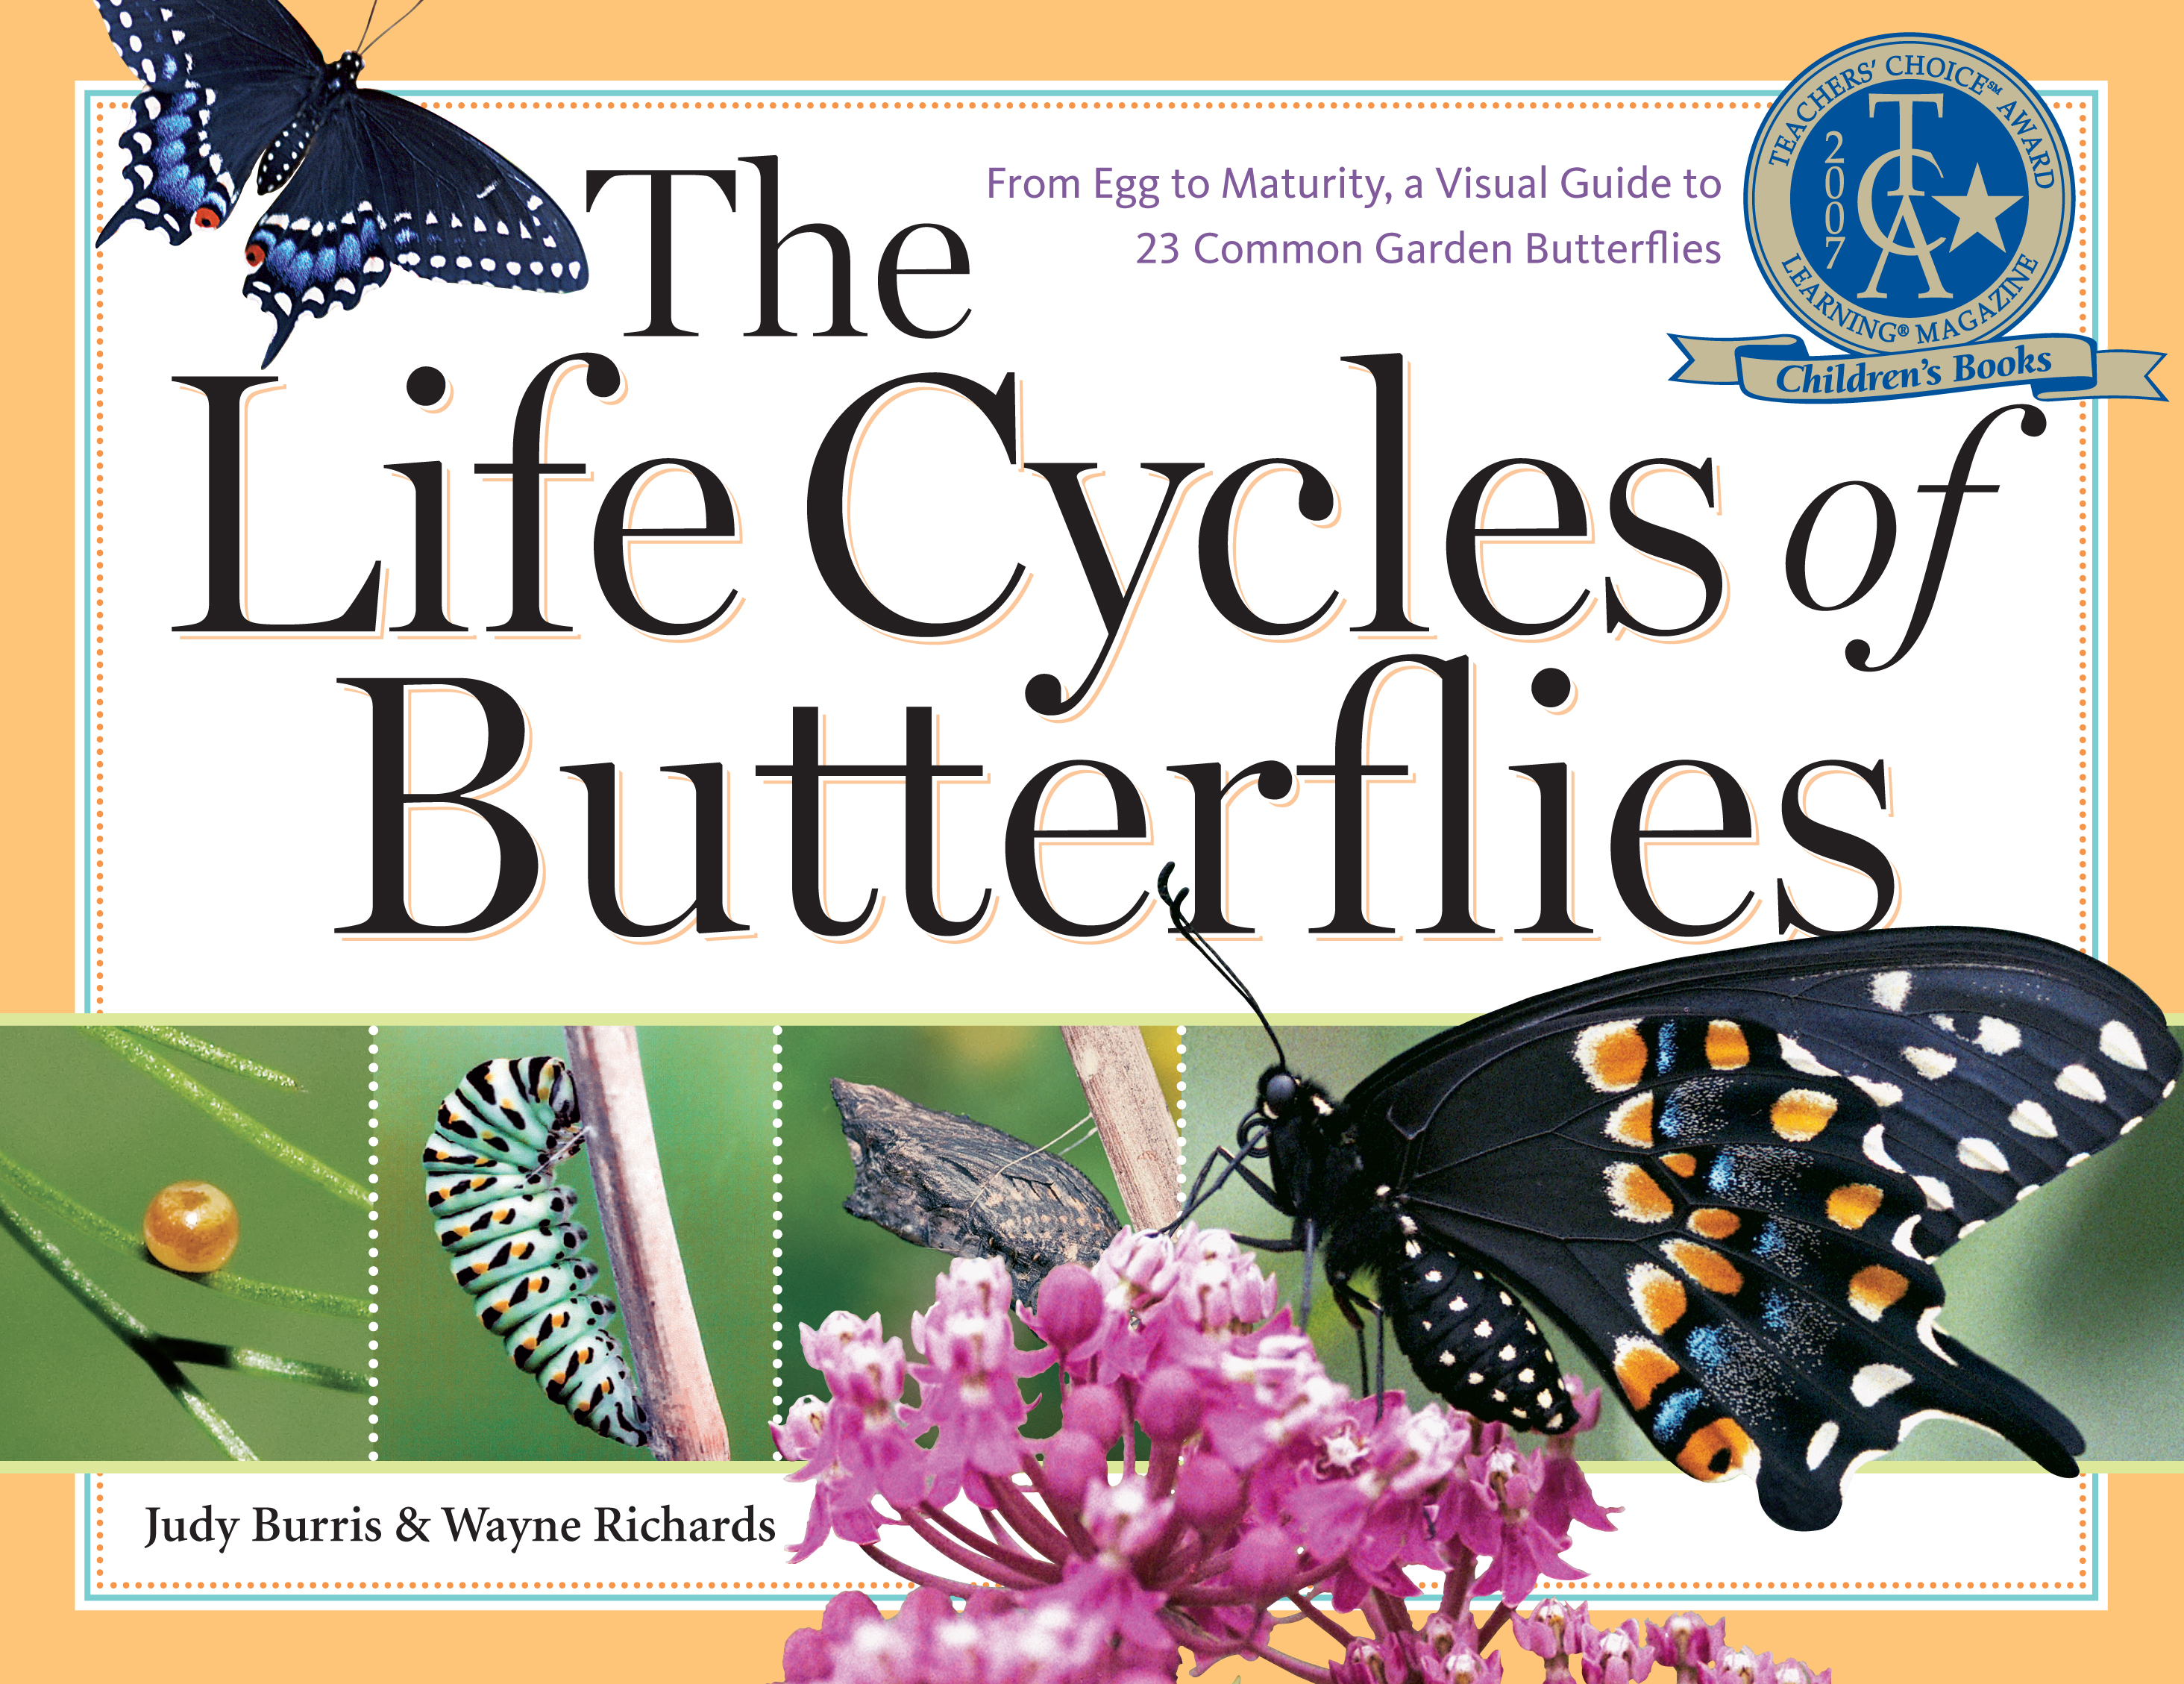 The Life Cycles of Butterflies From Egg to Maturity, a Visual Guide to 23 Common Garden Butterflies